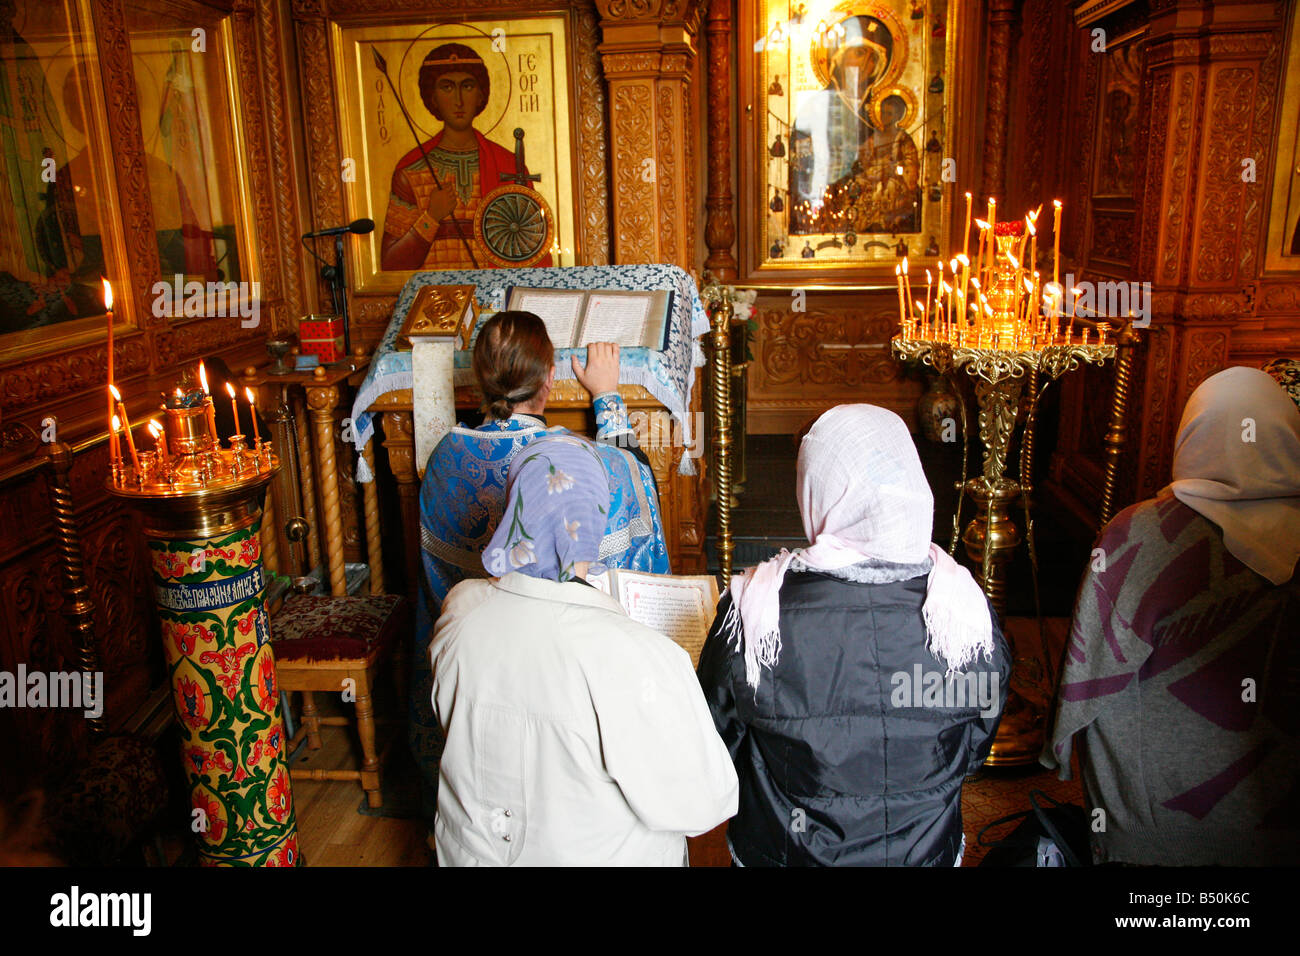 Sep 2008 - People worship inside the Chapel of the Iberian Virgin at the Resurrection Gate Moscow Russia - Stock Image